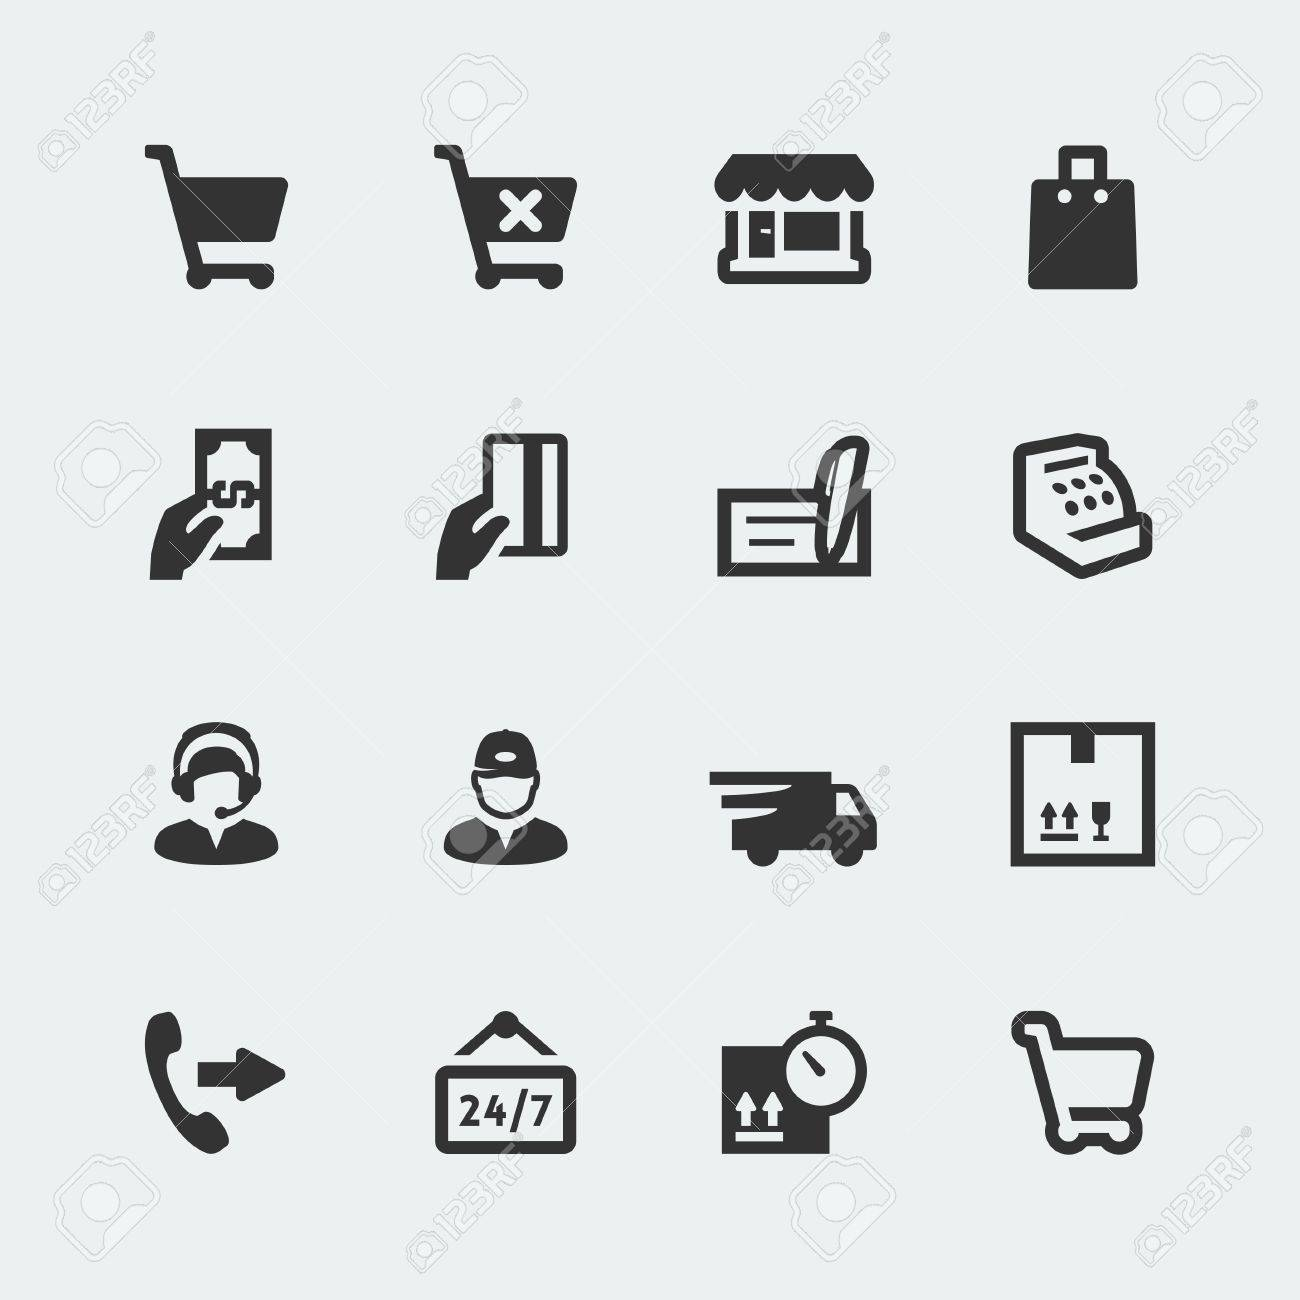 Vector shopping and e-store mini icons set - 27426076